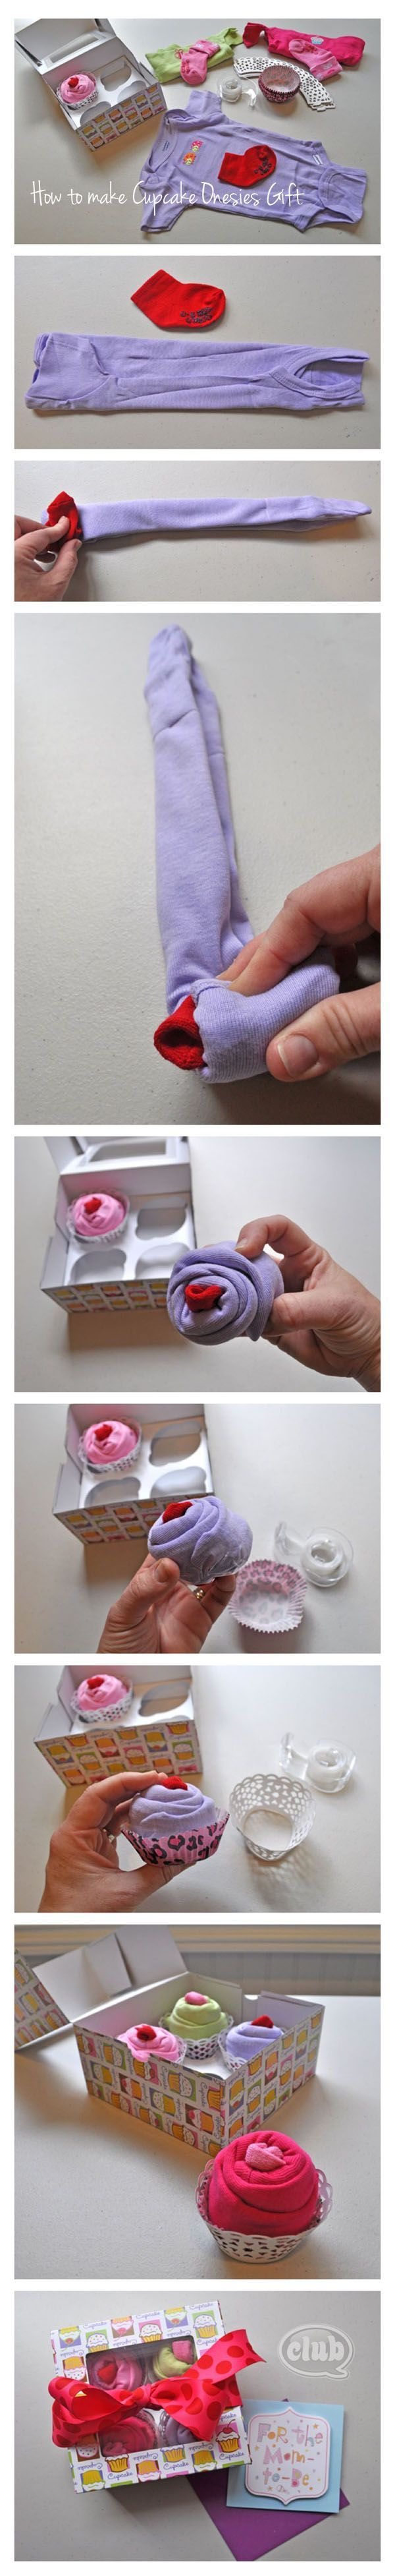 Cupcake onesies baby gift - perfect homemade gift idea. so cute! someone please have a kid so i can do this